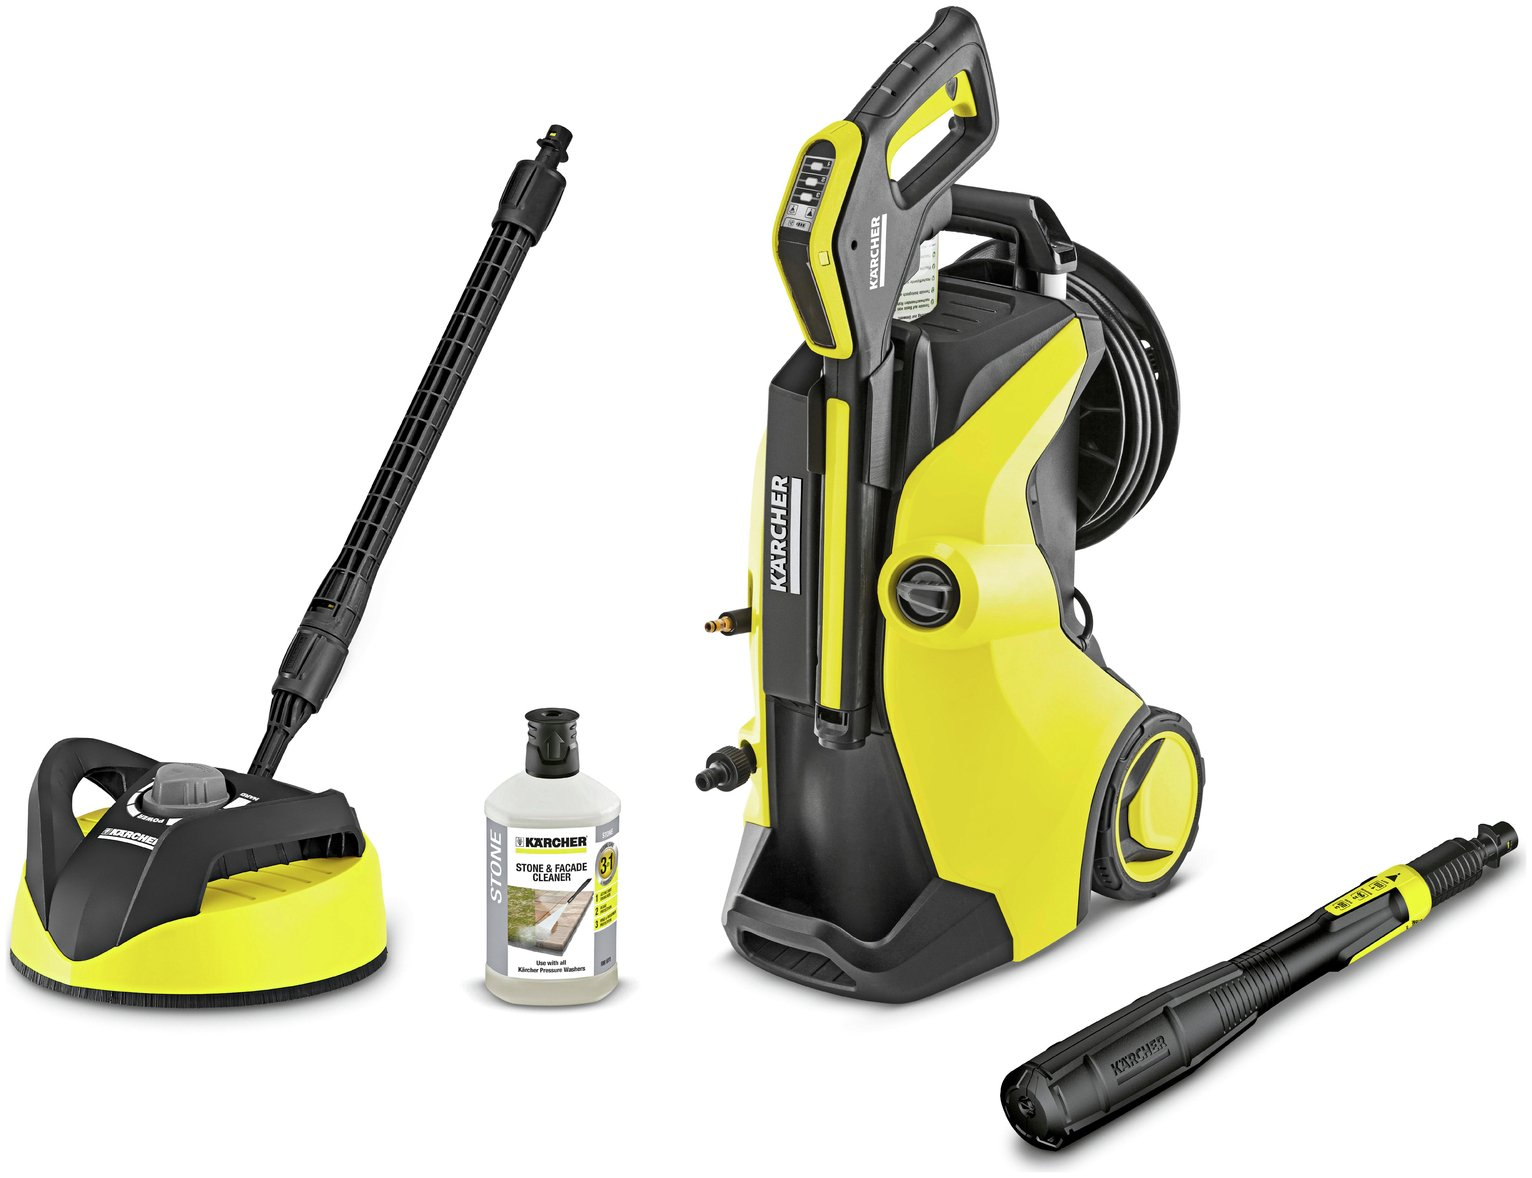 Krcher Find Offers Online And Compare Prices At Wunderstore Wd4 Mv 4 Premium Vacuum Cleaner Wet Dry Karcher K5 Full Control Plus Home Pressure Washer Argos From